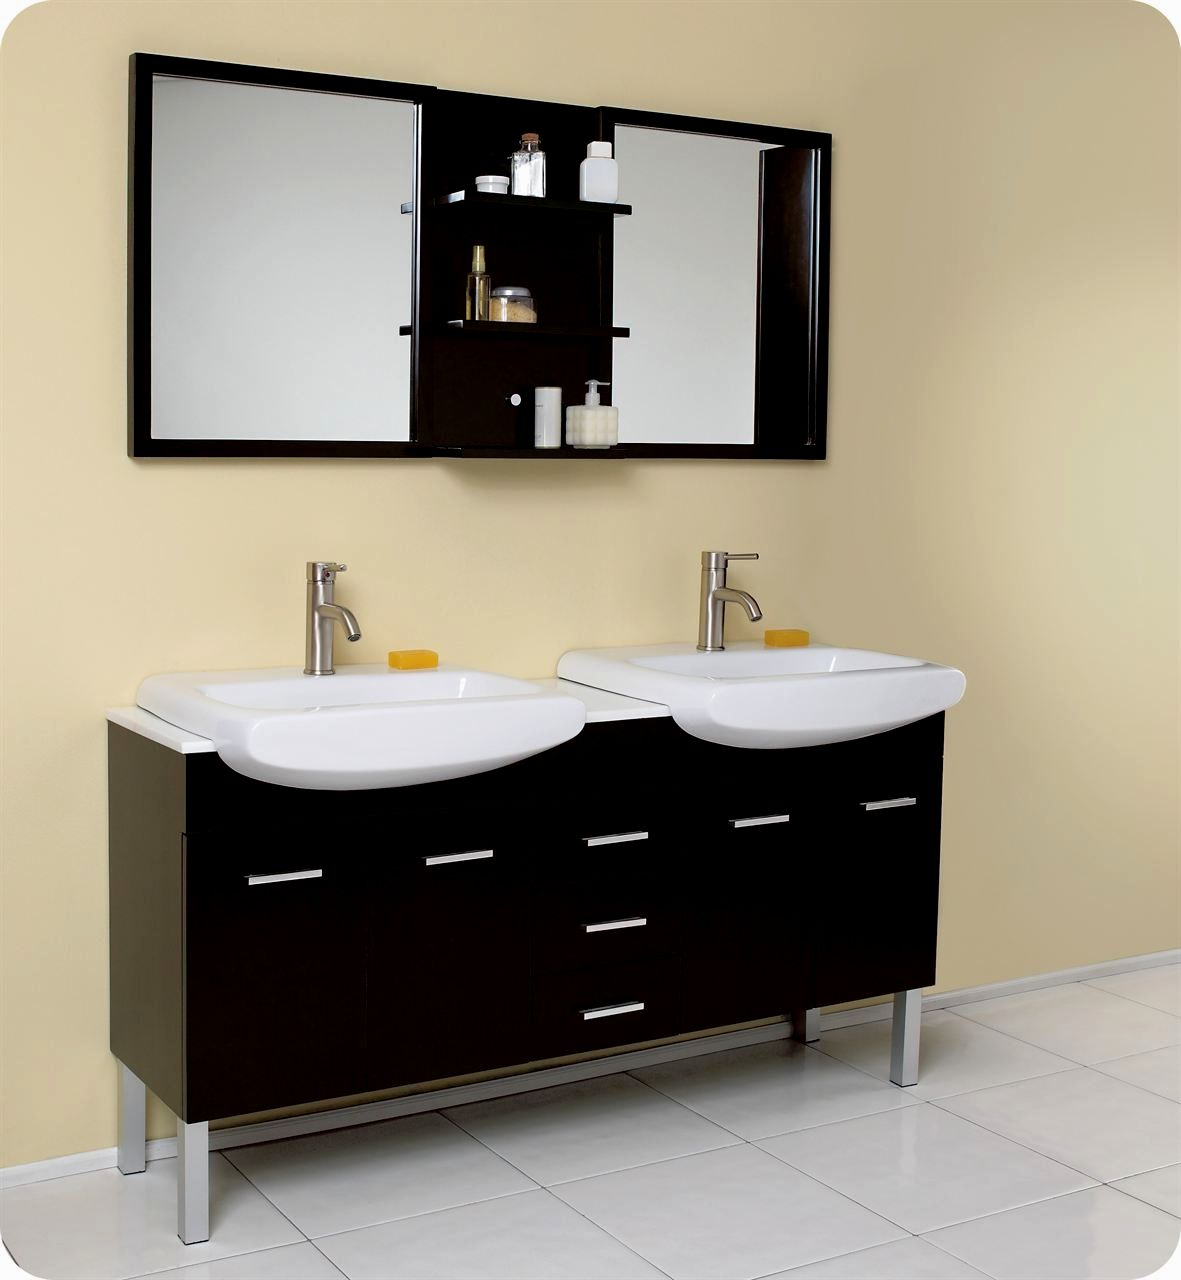 finest bathroom double vanities with tops decoration-Wonderful Bathroom Double Vanities with tops Gallery